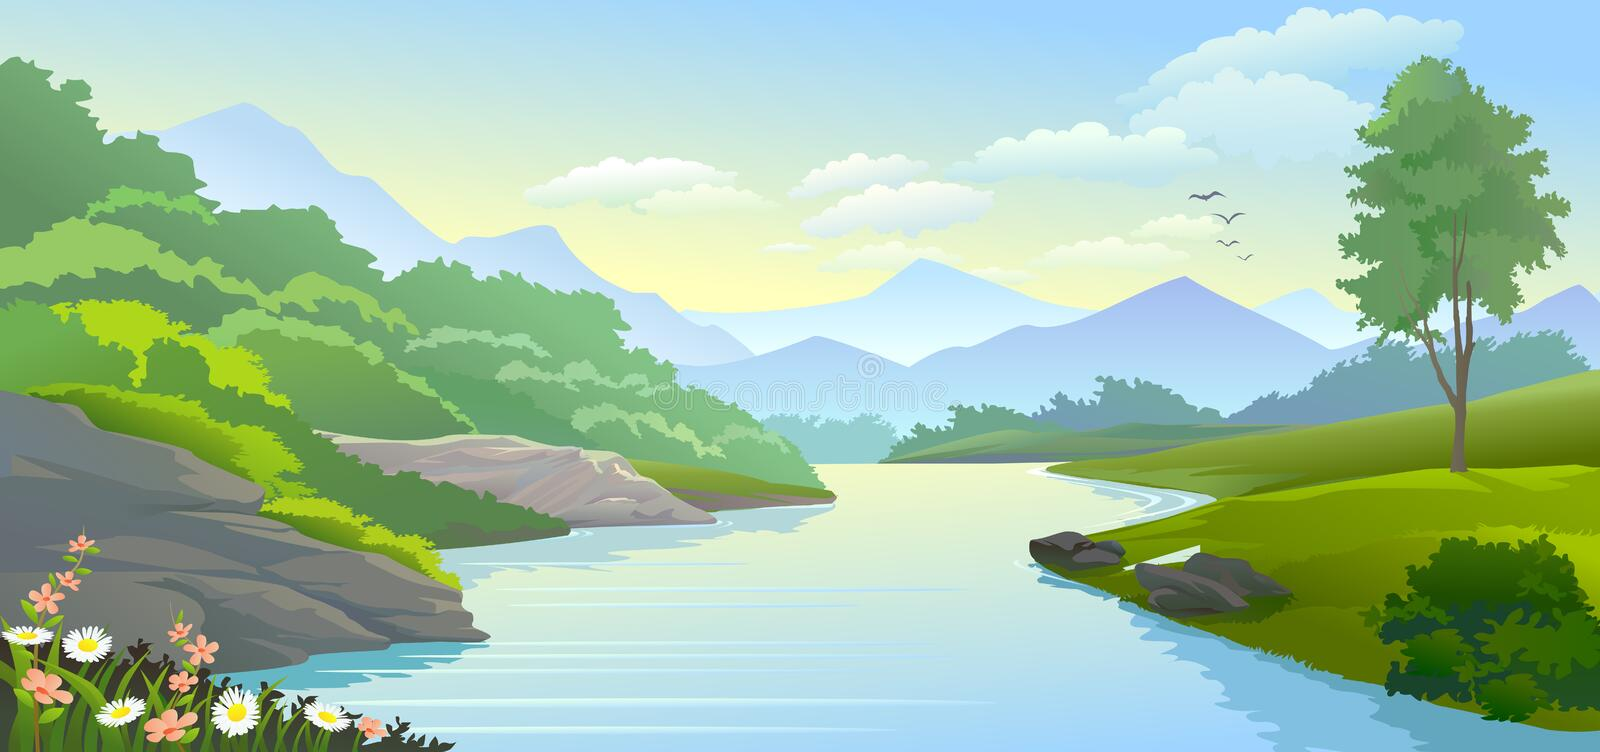 Panoramic view of river flowing in a valley stock illustration